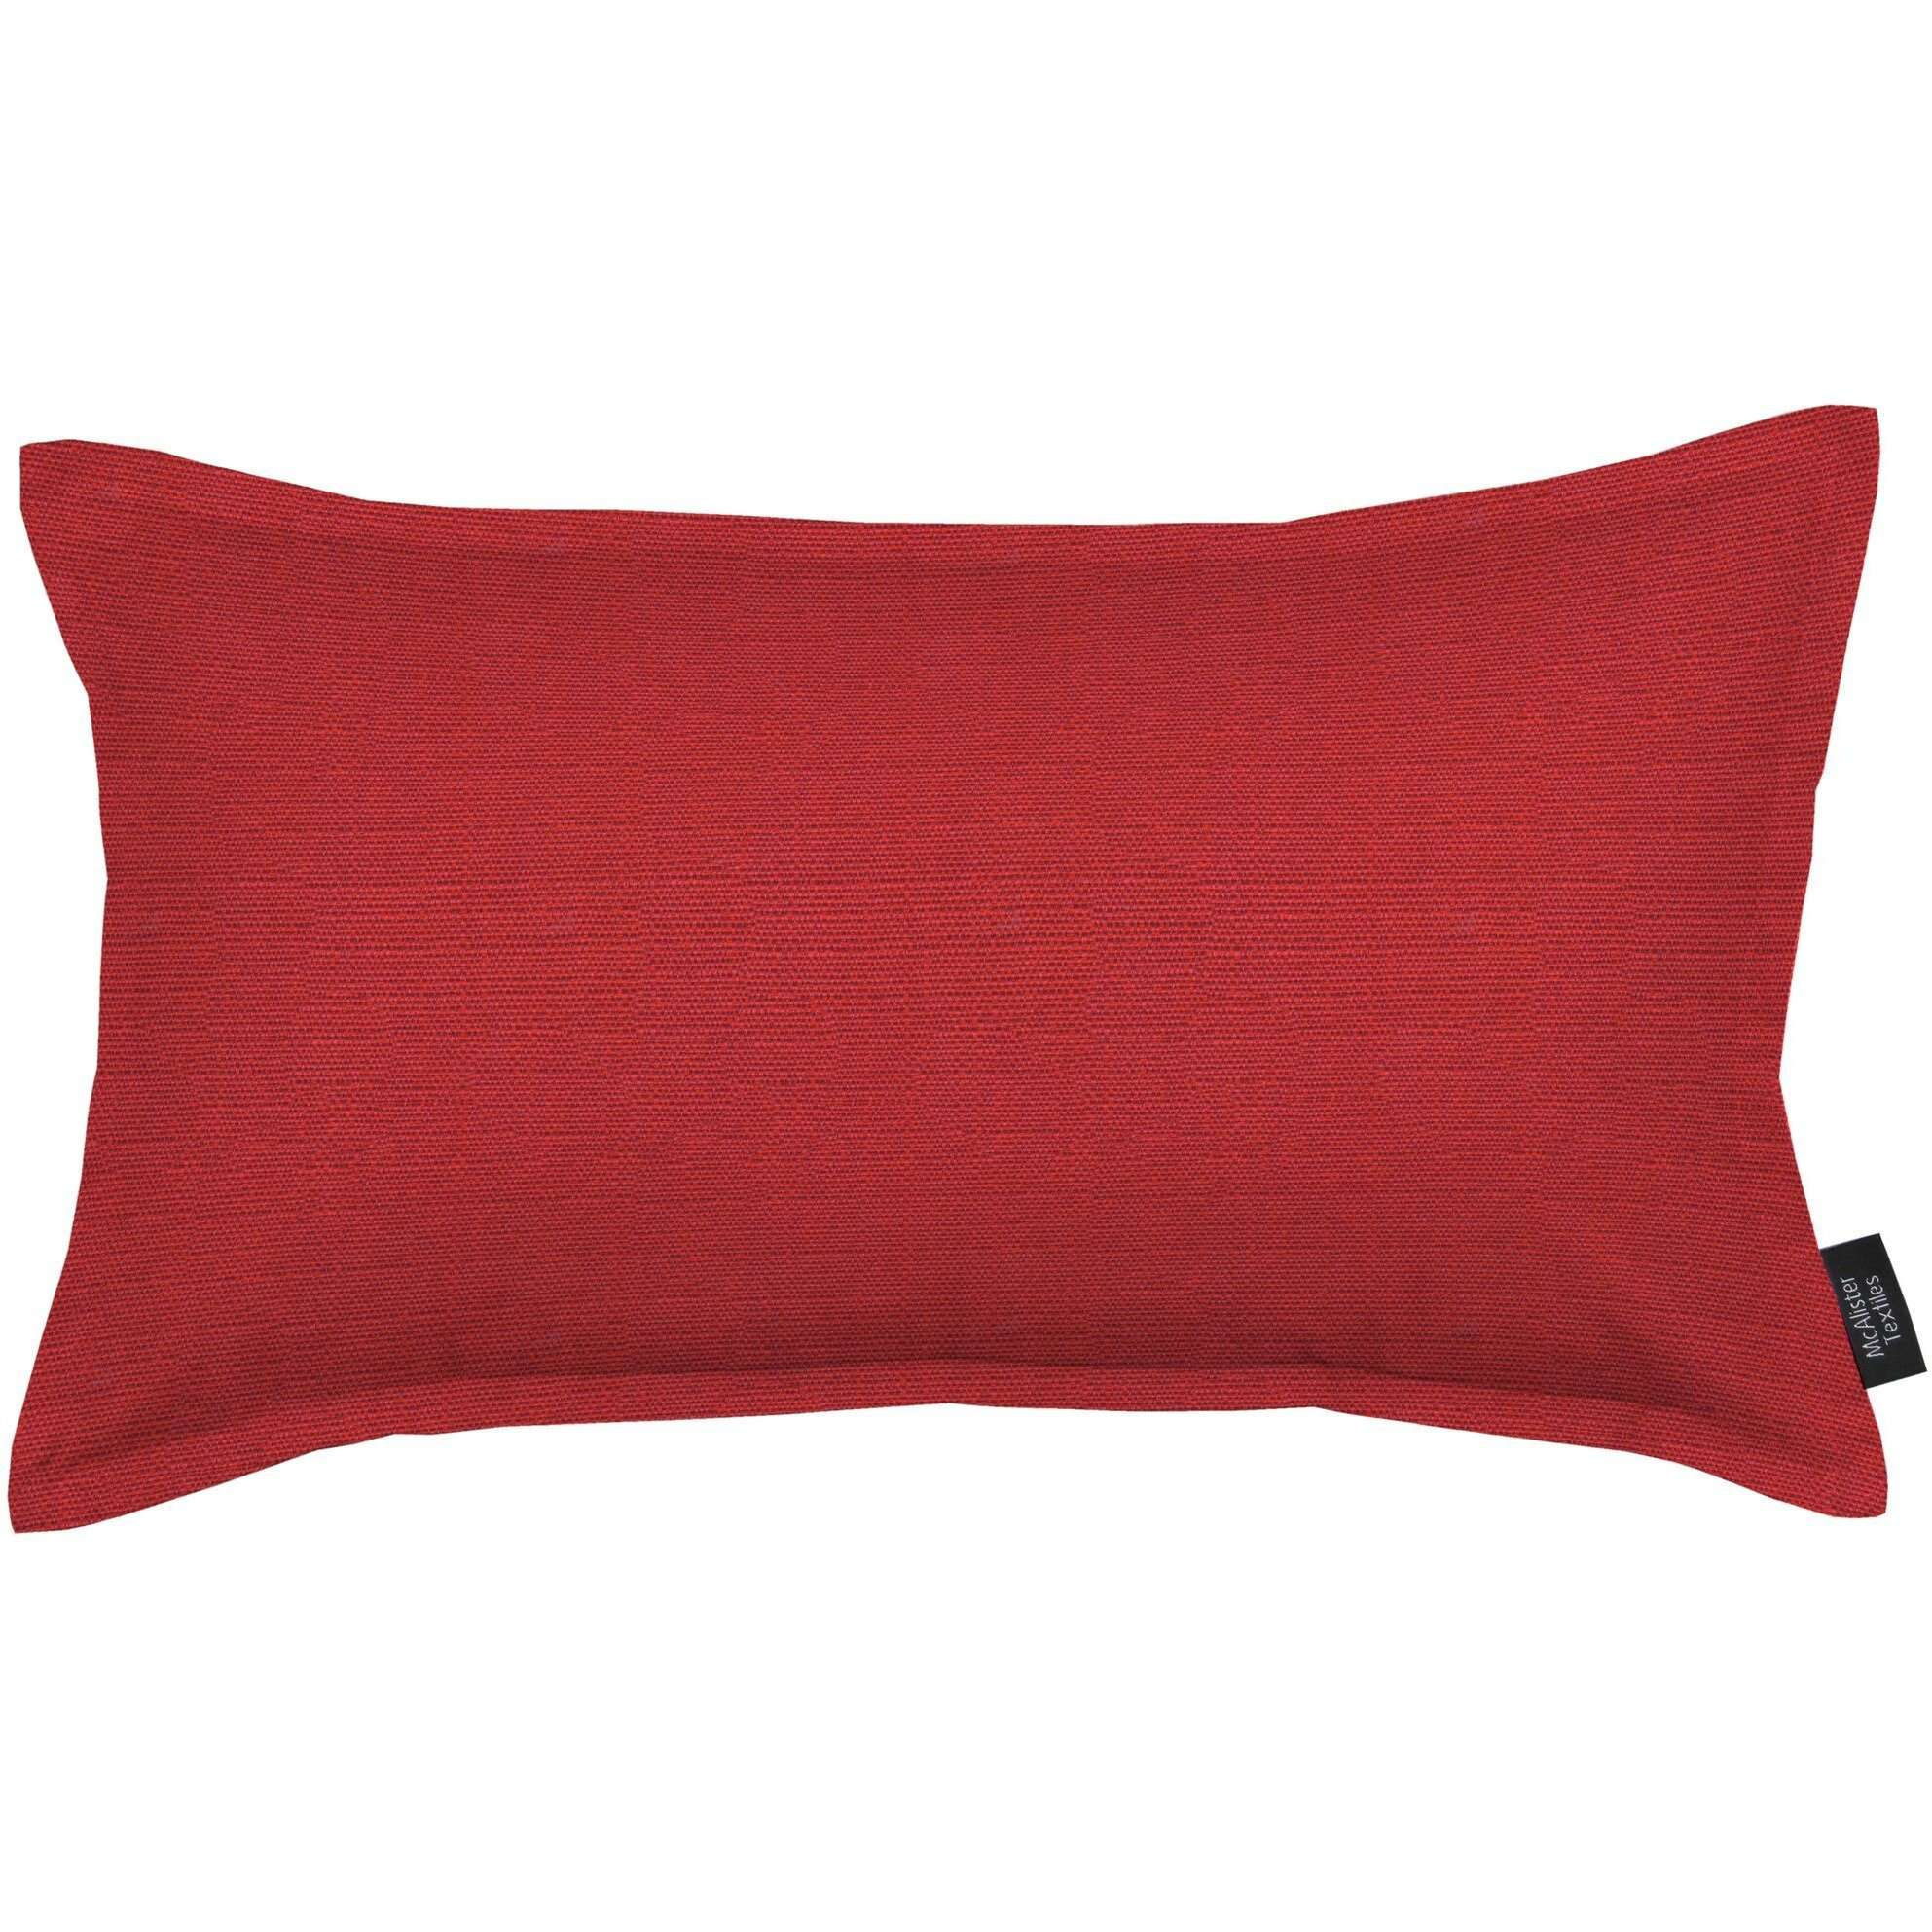 McAlister Textiles Savannah Wine Red Pillow Pillow Cover Only 50cm x 30cm